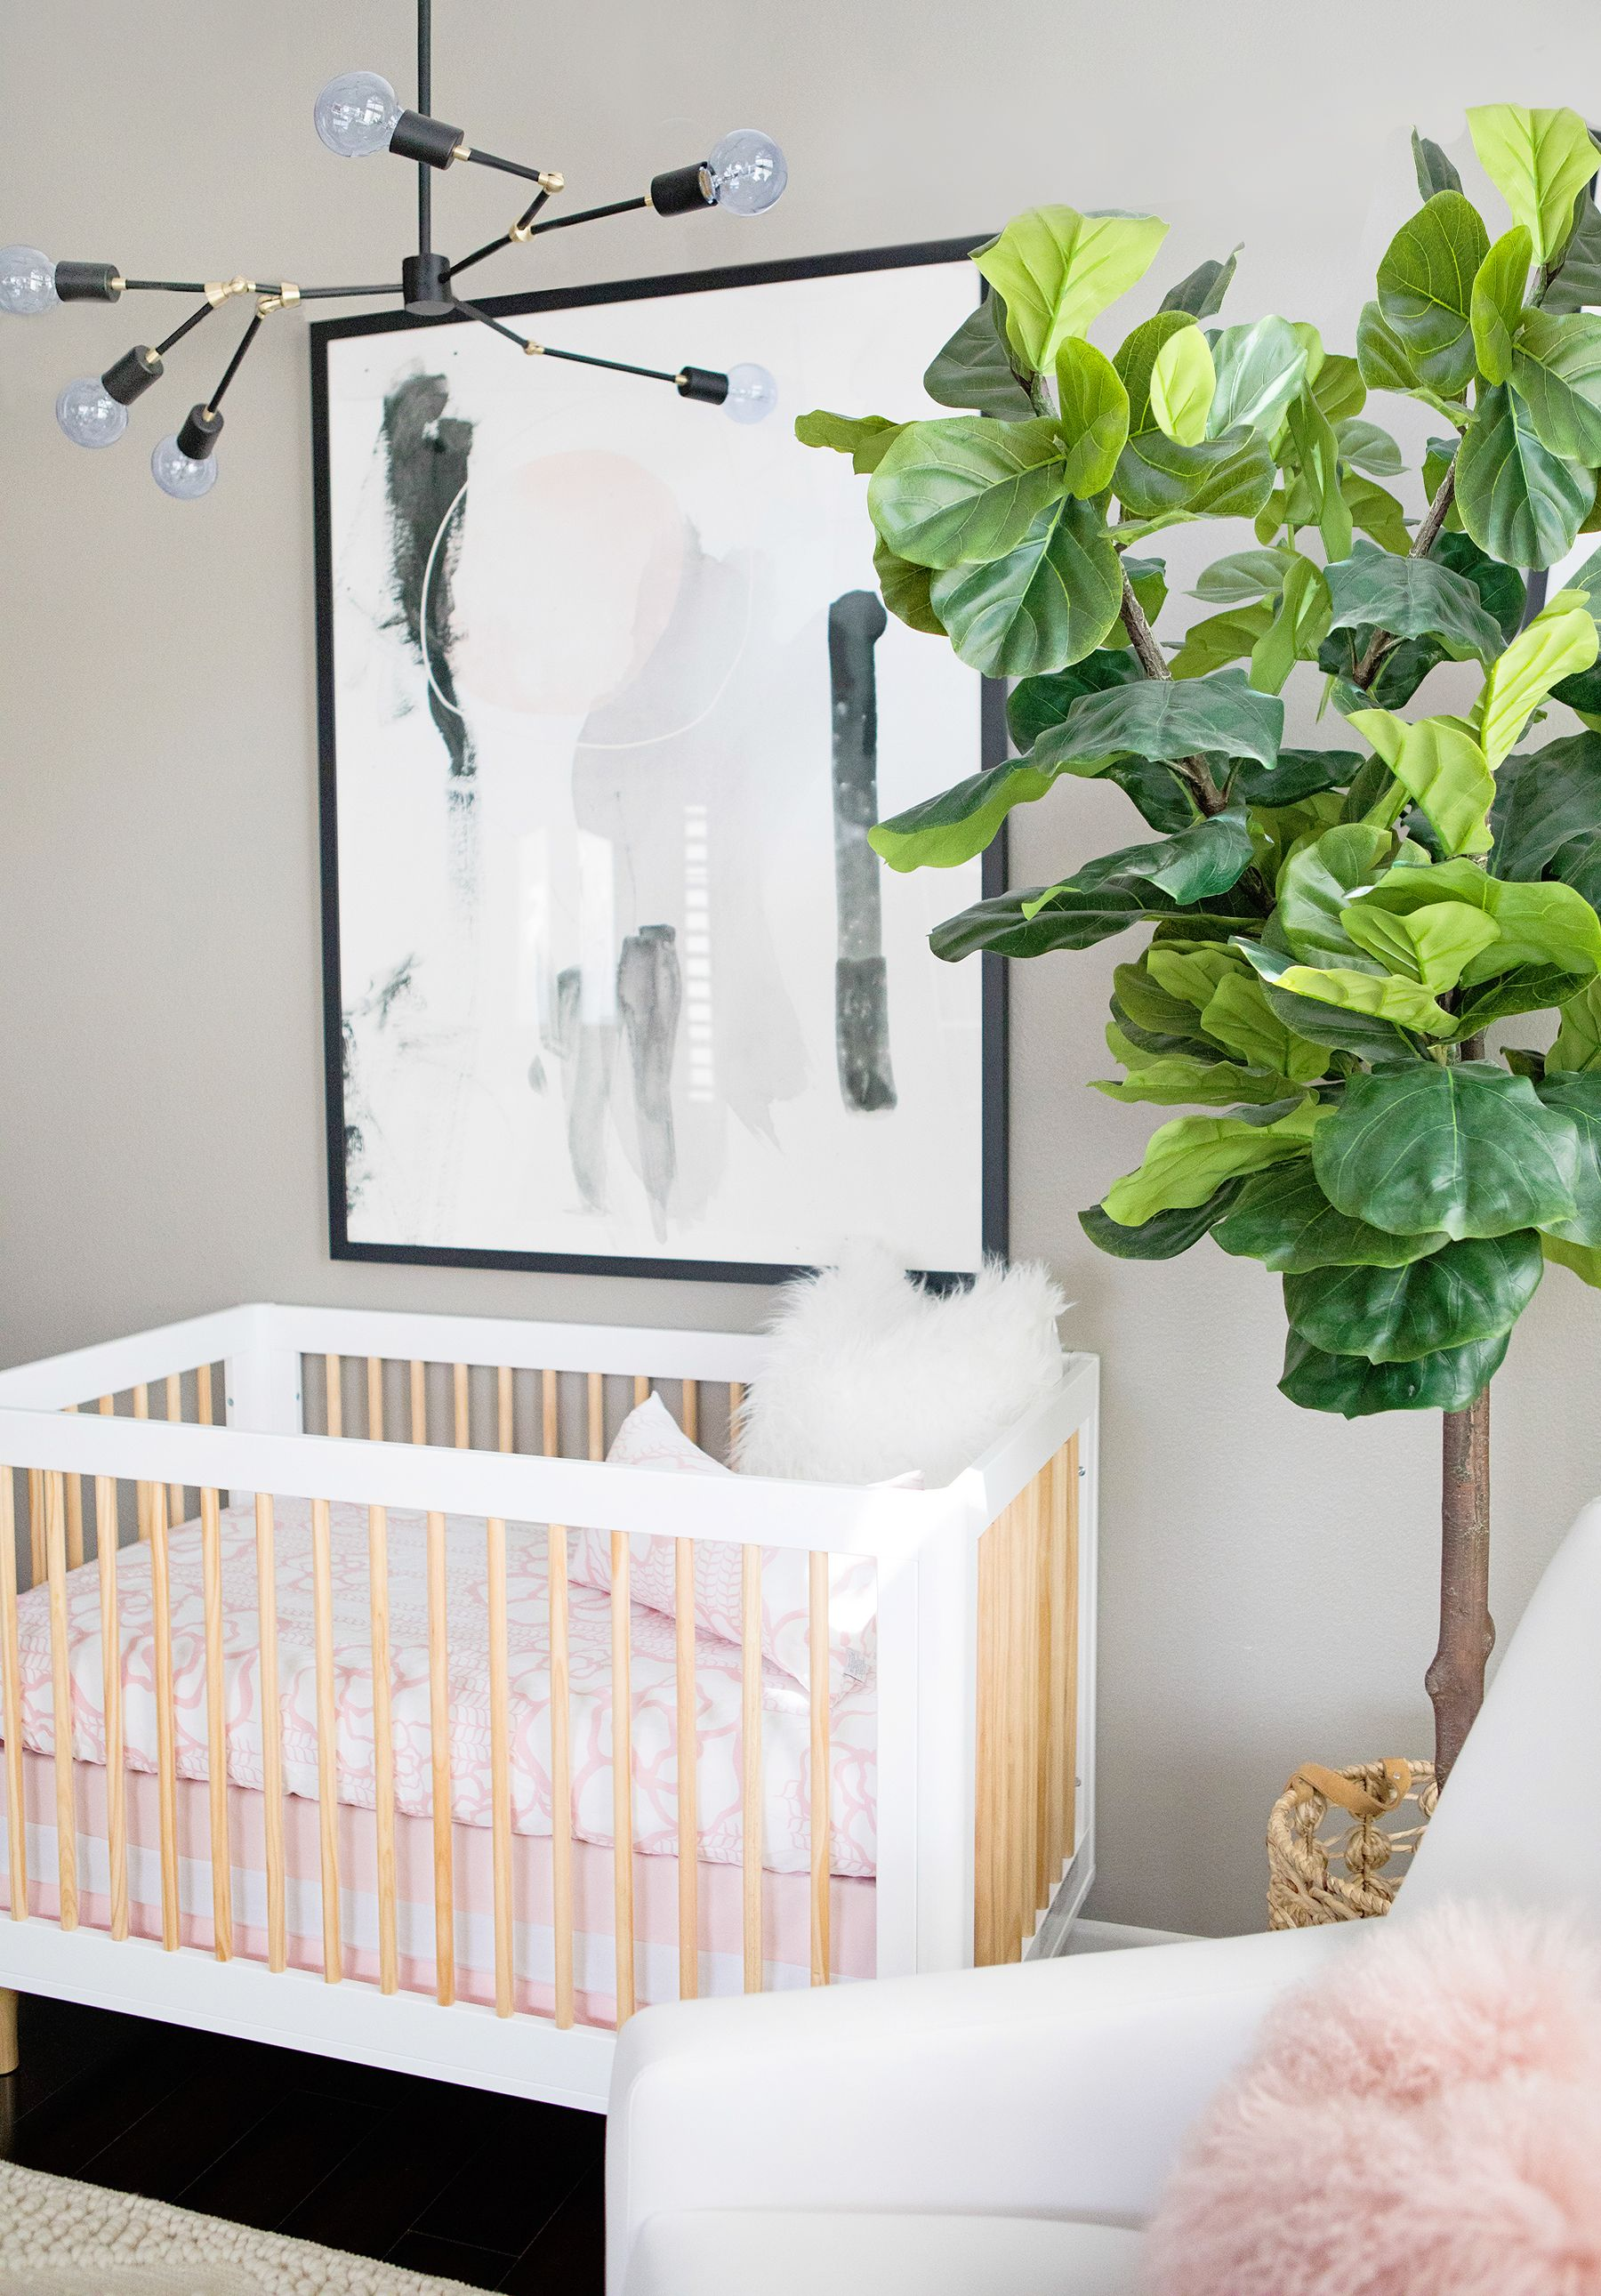 Project Nursery Kailee Wright With Modern Light Fixture